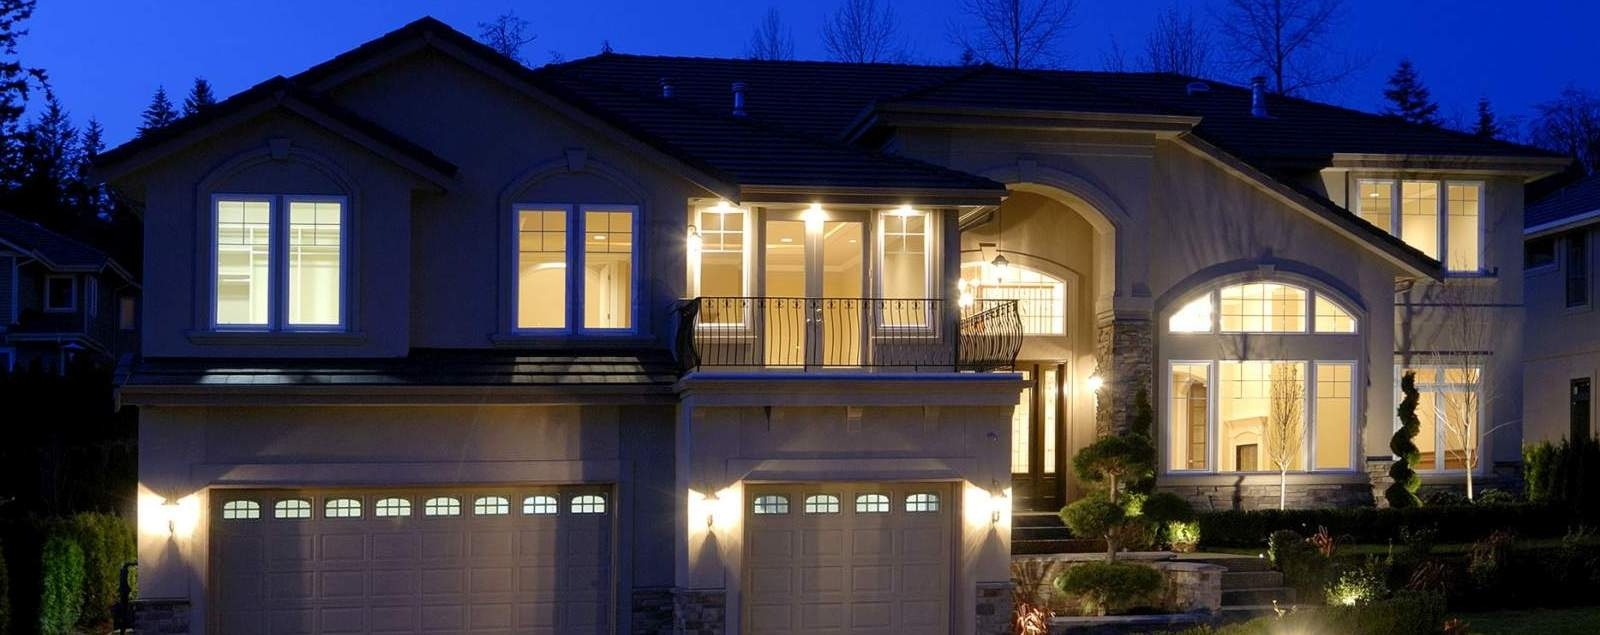 Outdoor Exterior Lanterns Pertaining To Most Current Outdoor Light Fixtures – Home Exterior Pendants, Flush & Porch Lighting (View 14 of 20)